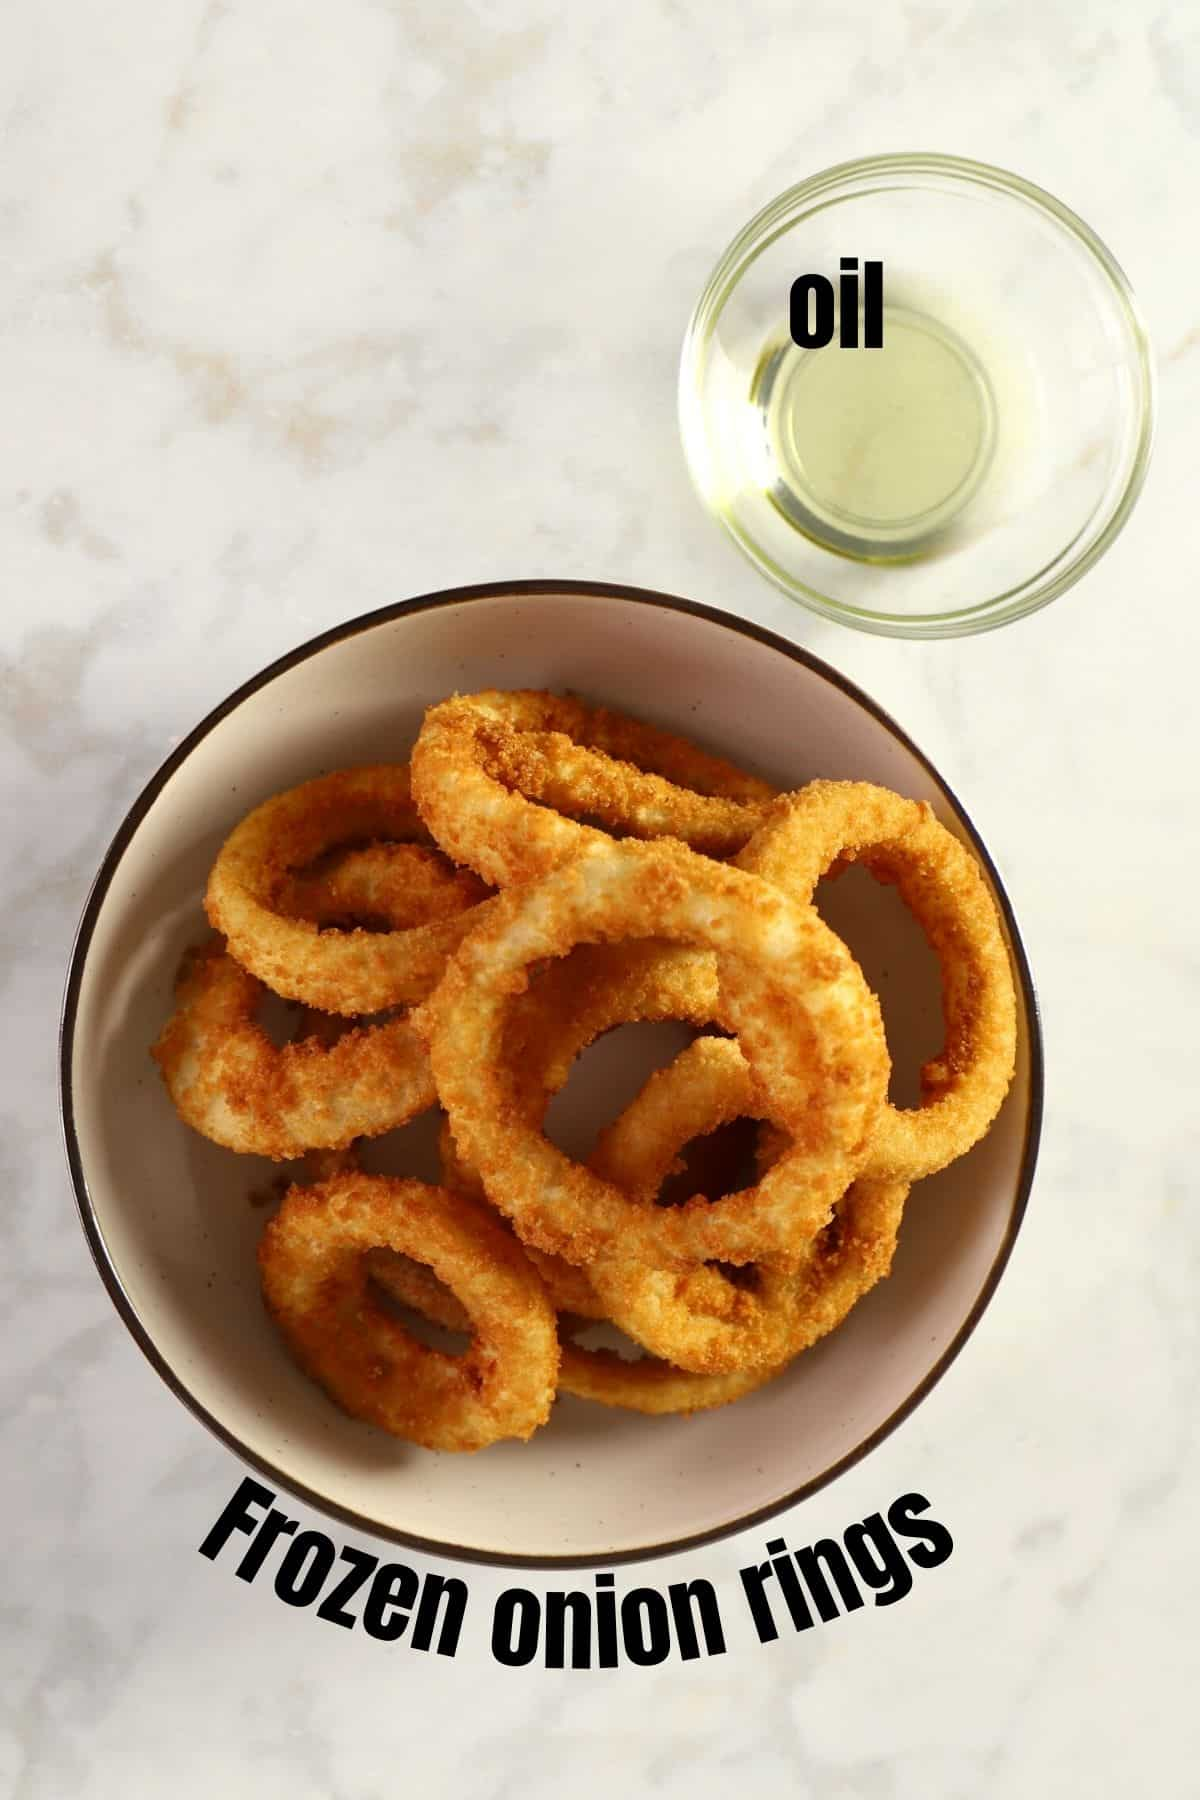 Ingredients for frozen onion rings placed on a white surface.